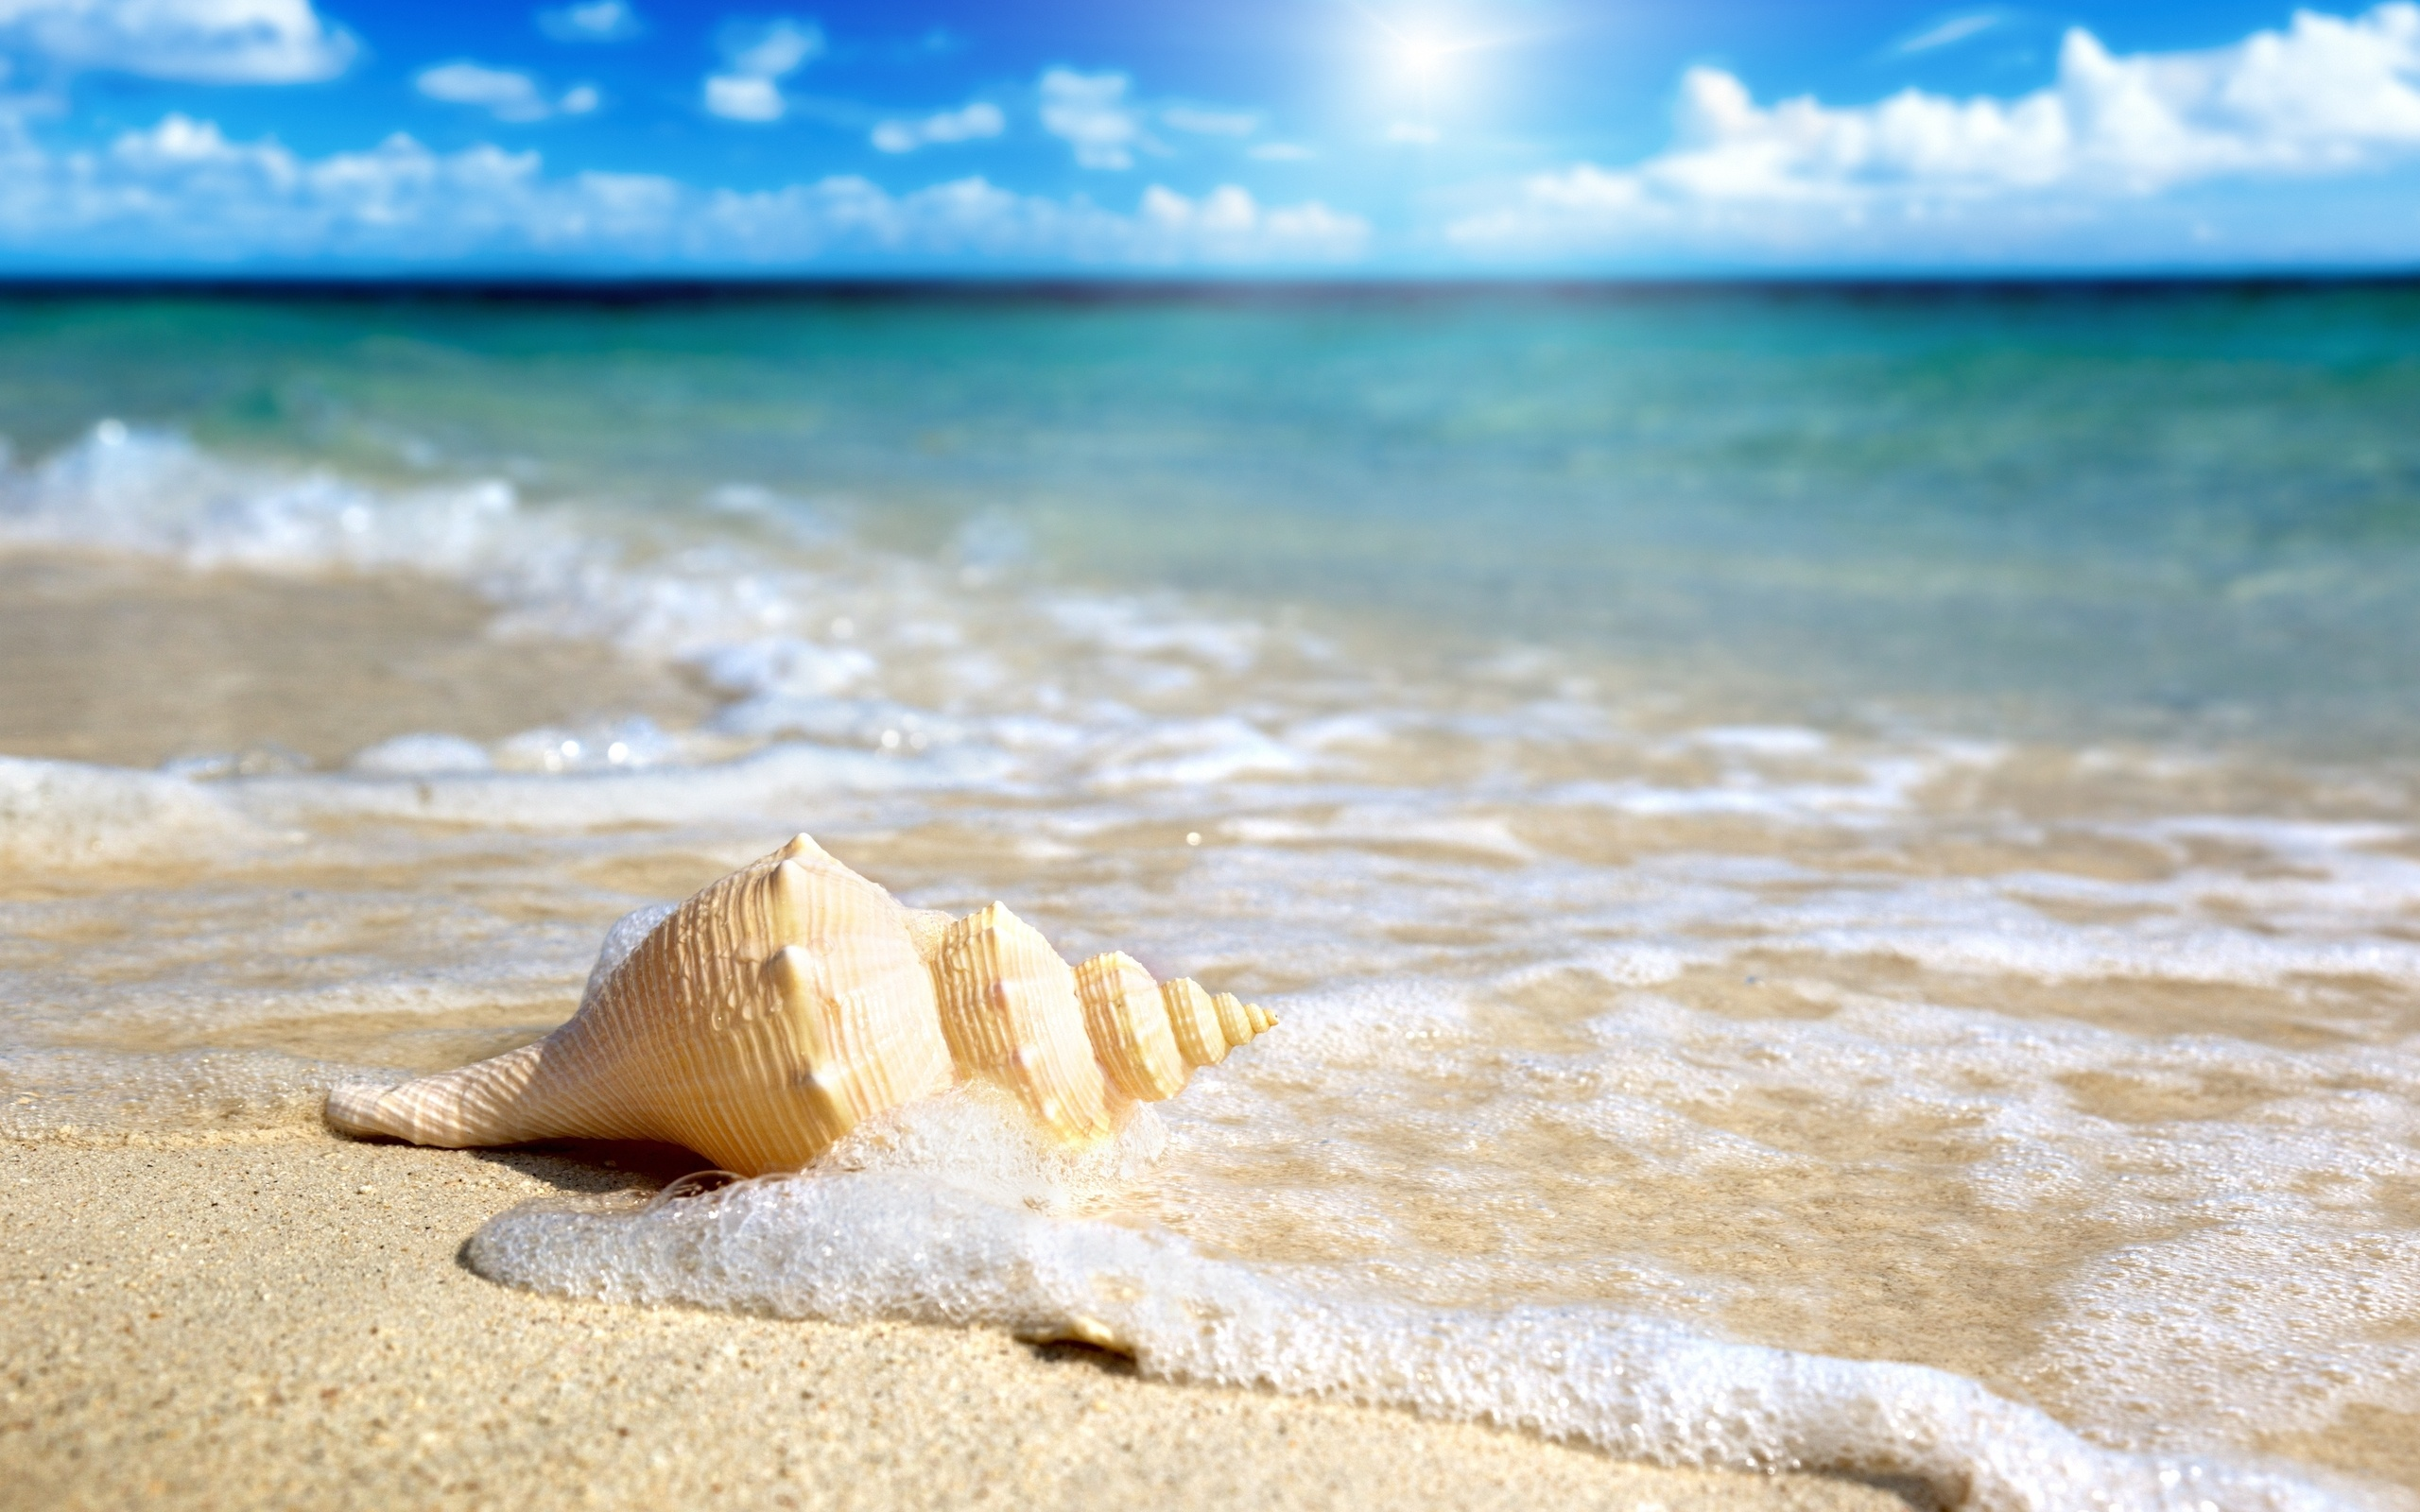 Shell on the beach 2560 x 1600 download close